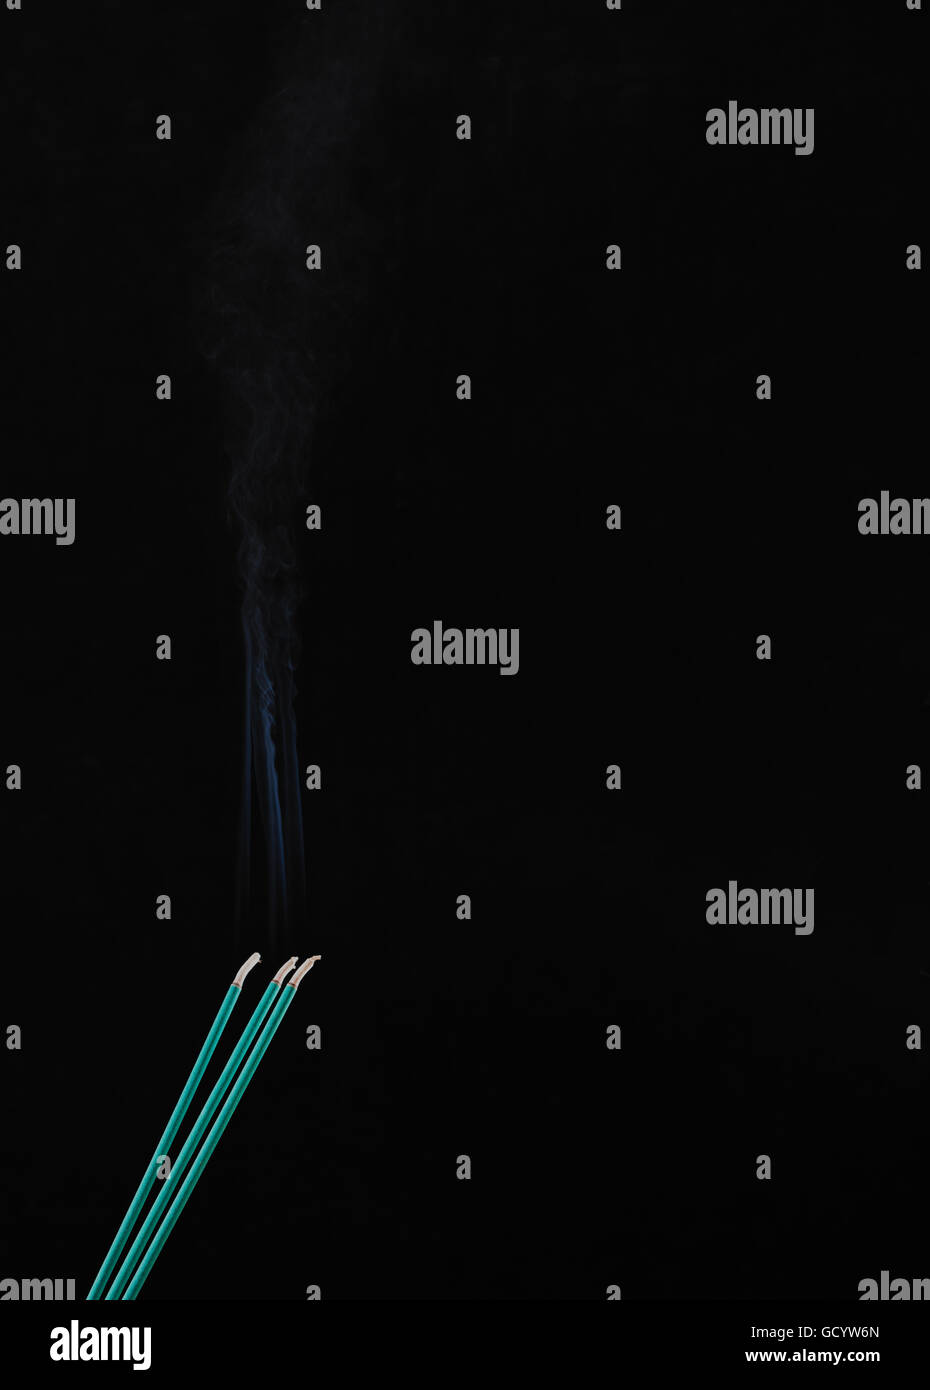 tree green incense sticks dispersing a delightful aroma on a black background. Free space for text - Stock Image